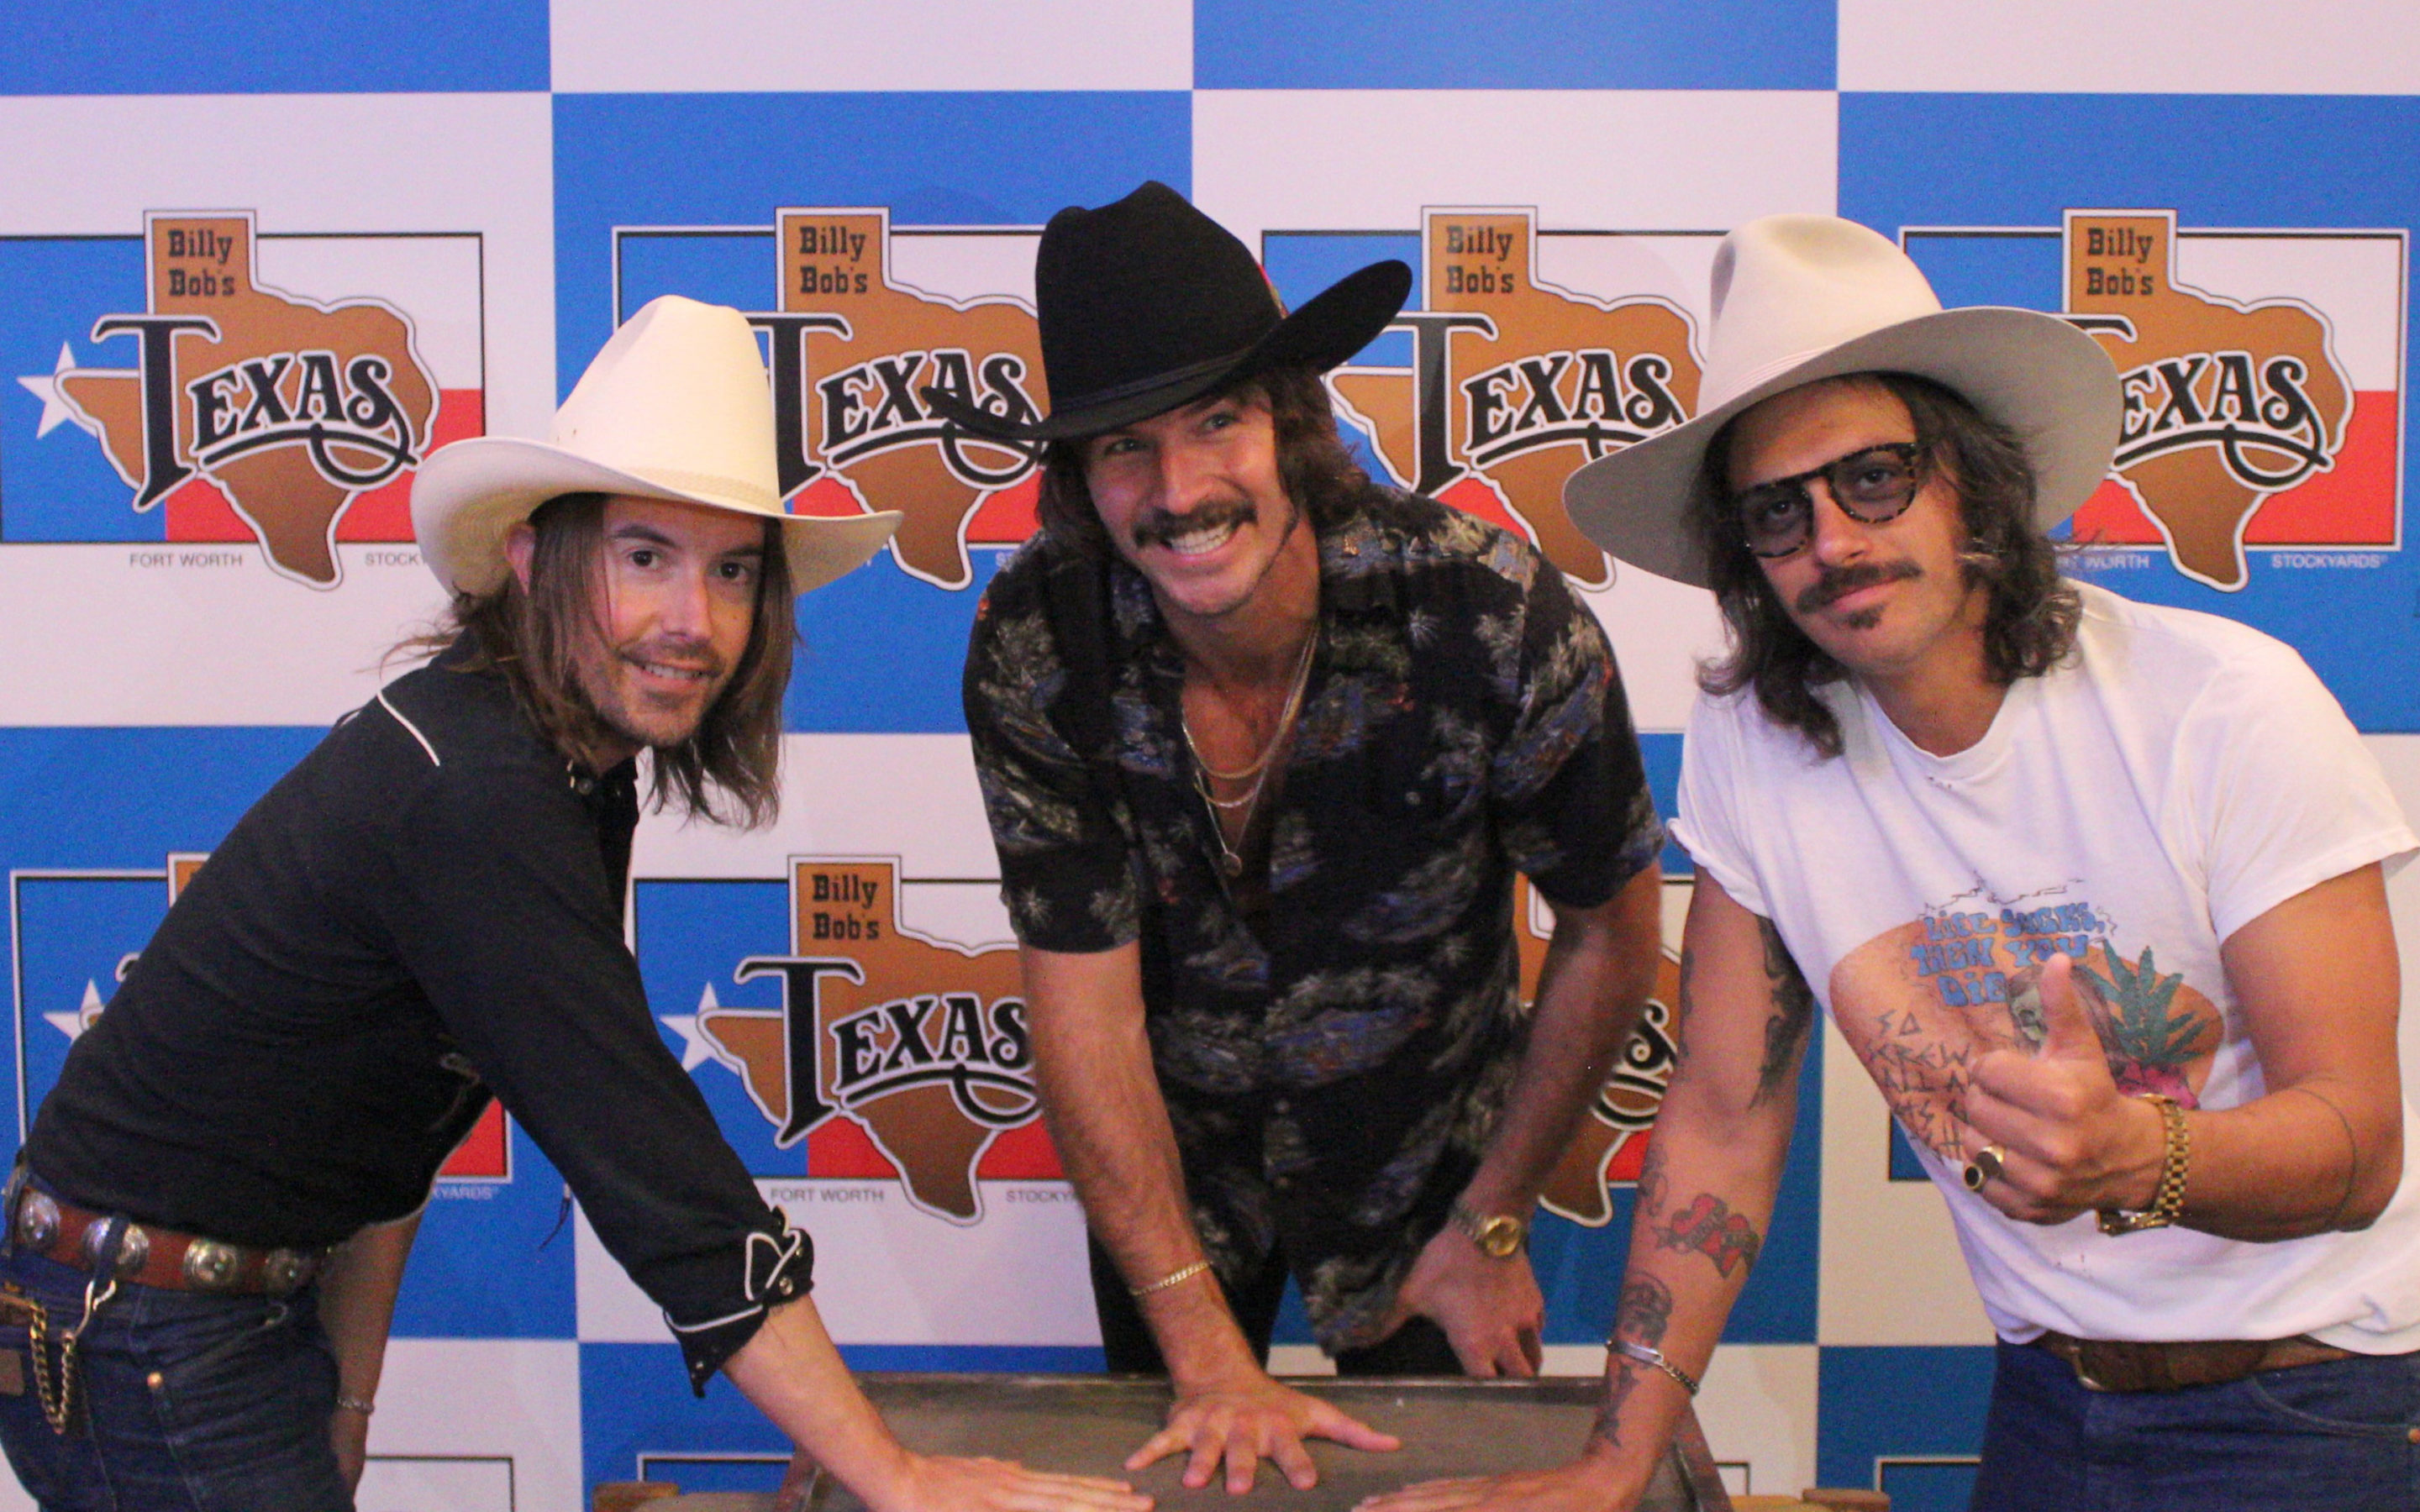 "MIDLAND ADDED TO BILLY BOB'S TEXAS ""HAND PRINTS OF STARS"" DURING RECENT SOLD OUT SHOW, JOINING GARTH BROOKS, BLAKE SHELTON, WILLIE NELSON, KEITH URBAN AND SO MANY MORE!"